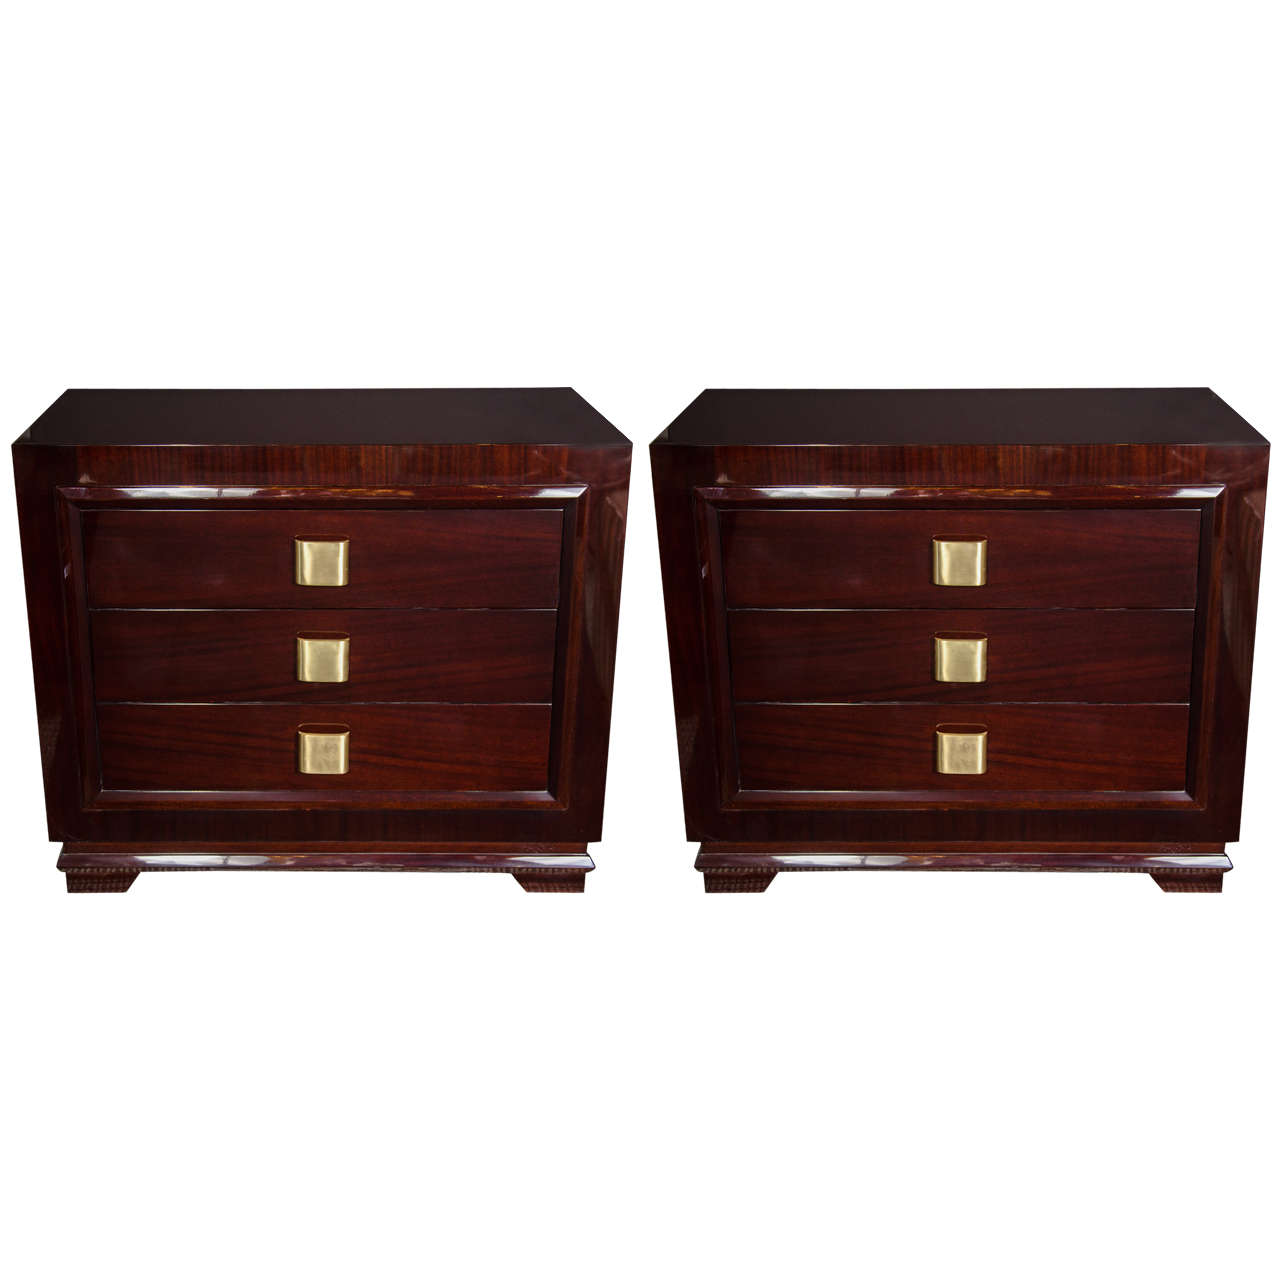 Pair of Outstanding Mid-Century Modern Chests with Brushed Brass Pulls For Sale